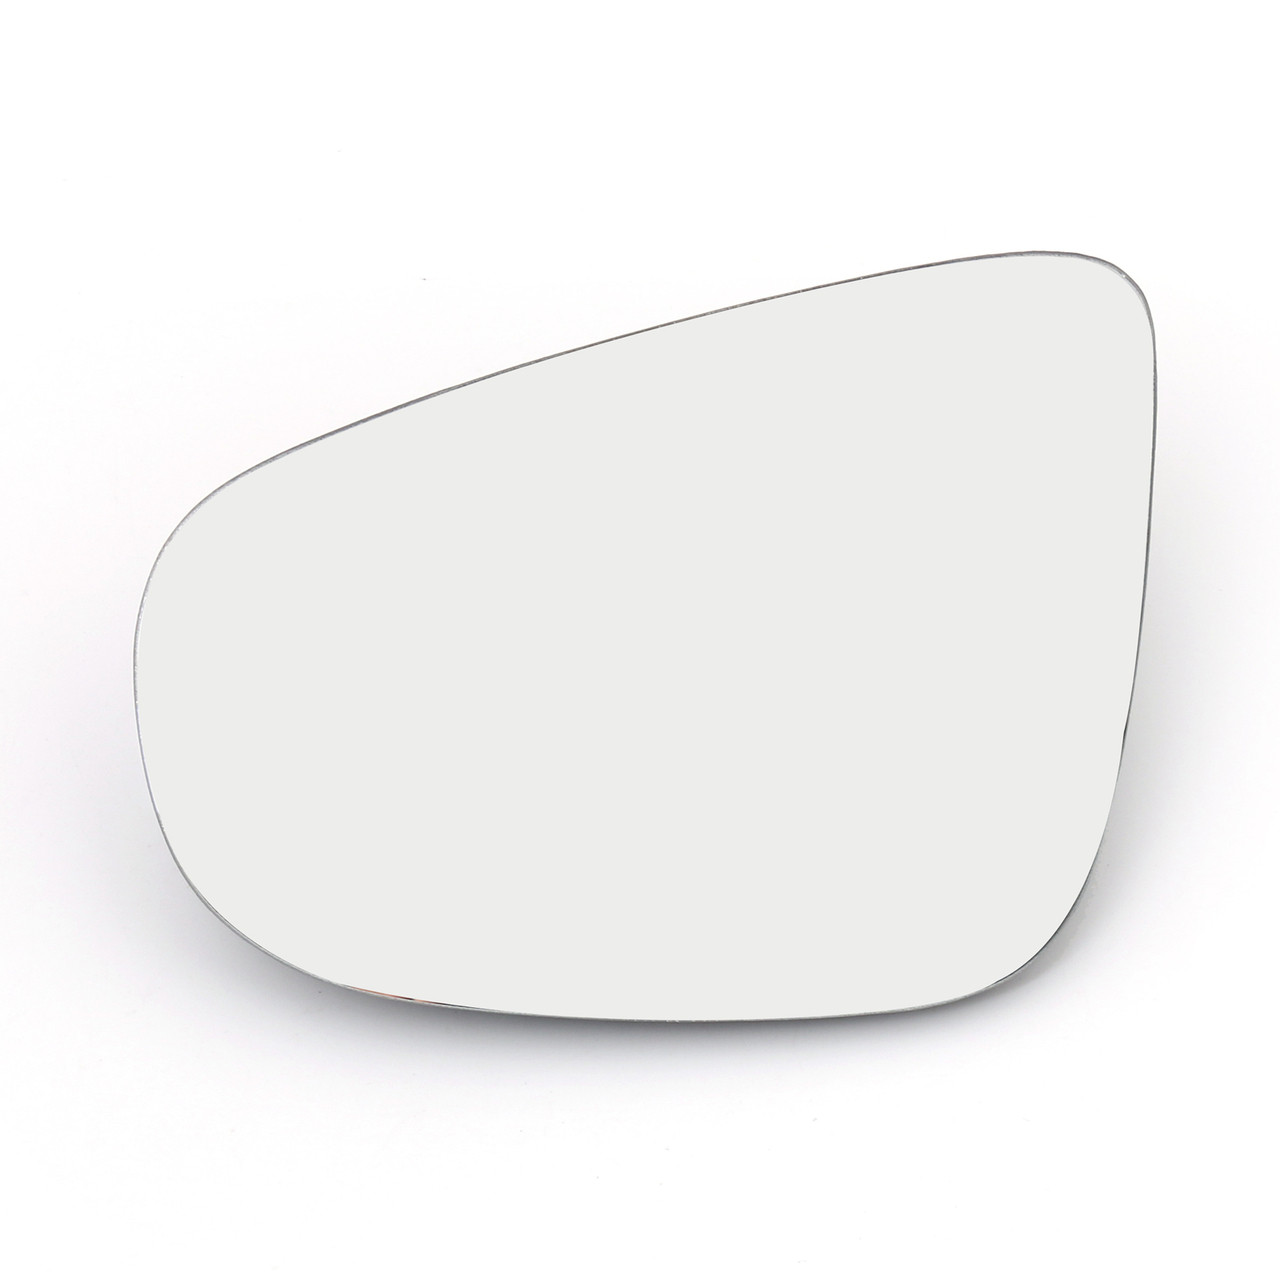 Left Heated Wing Rear View Mirror Glass VW Golf GTI R (09-13) MK6 Only, VW Touran (09-14)